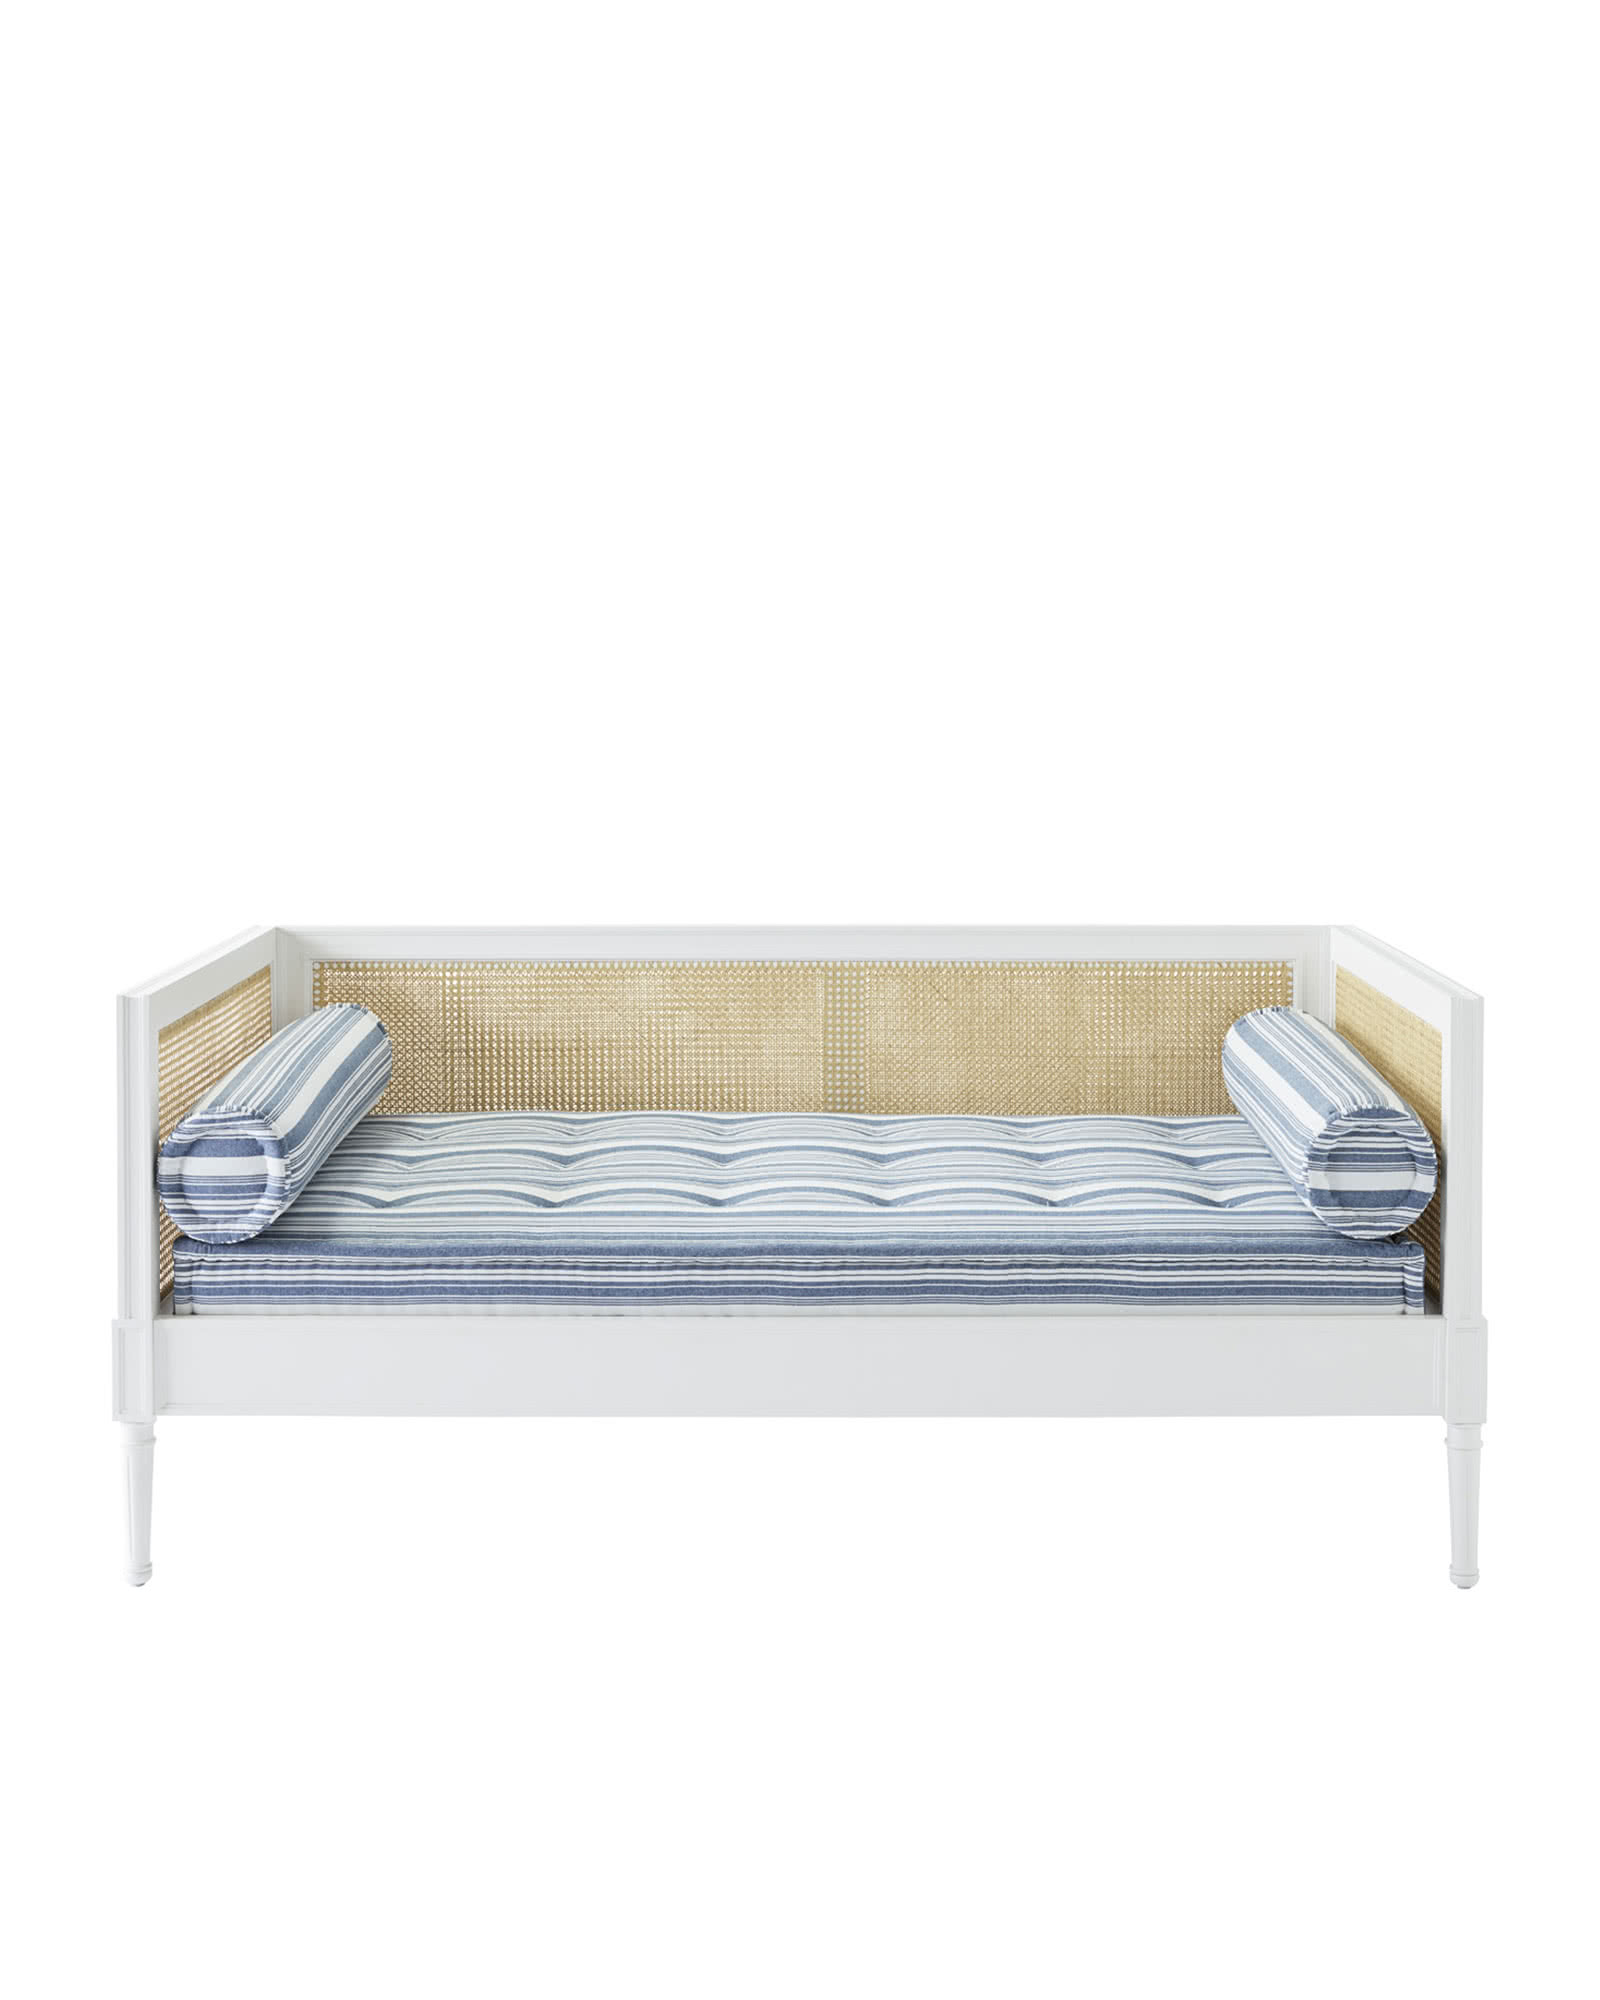 htm sixties monde pine p scandinavian daybed x en uk maisons du white bench